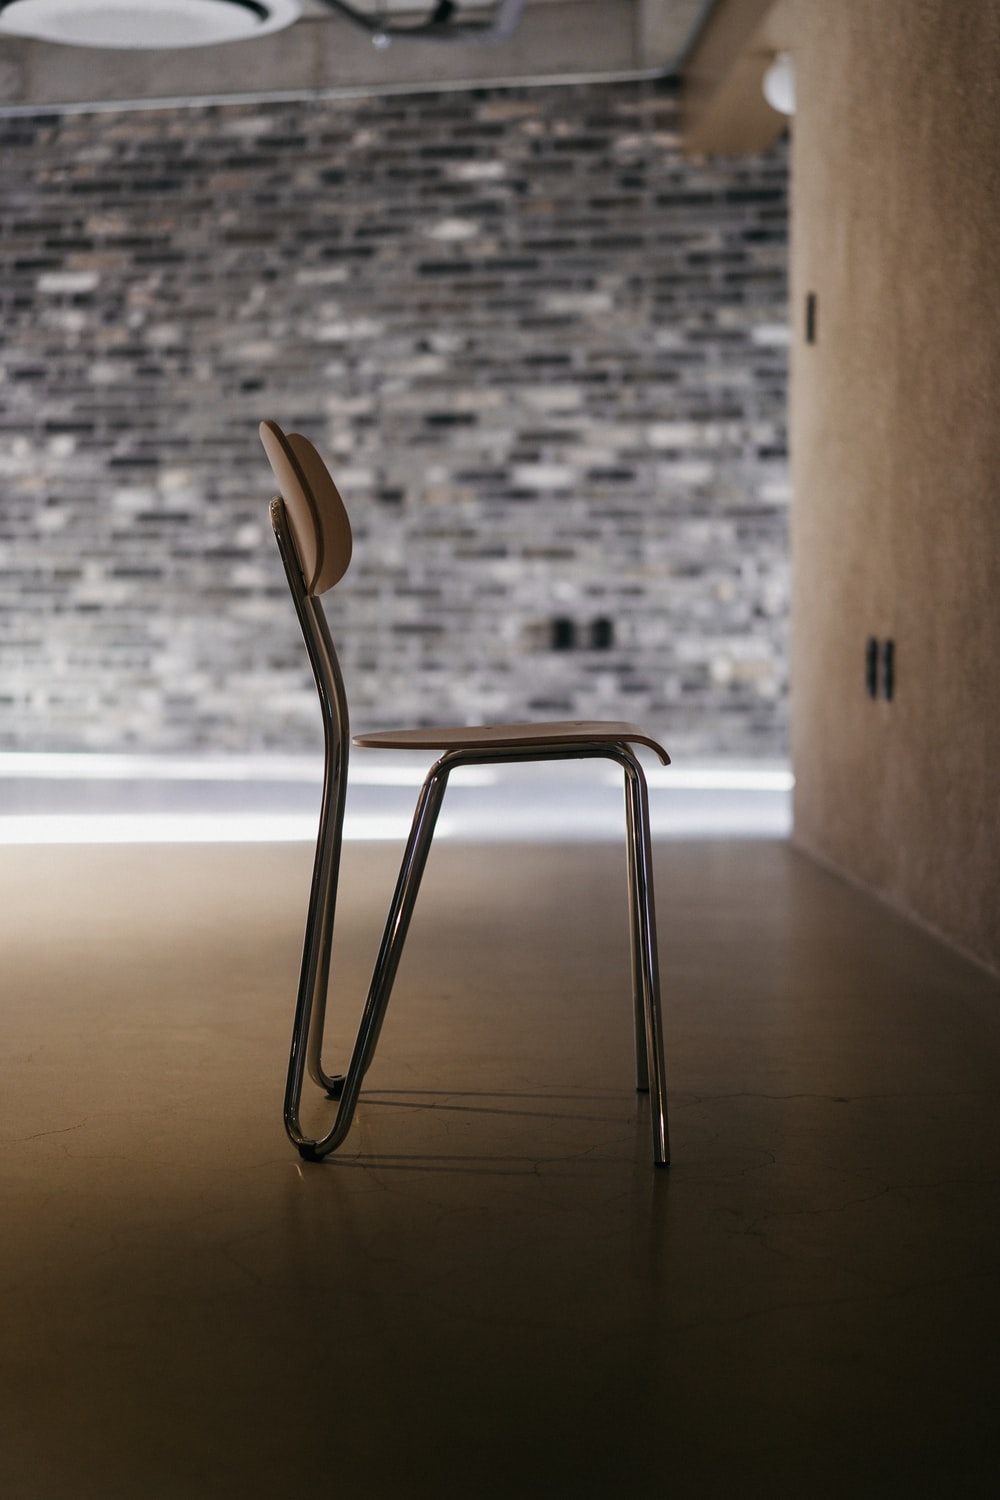 stainless steel chair beside brown wooden wall